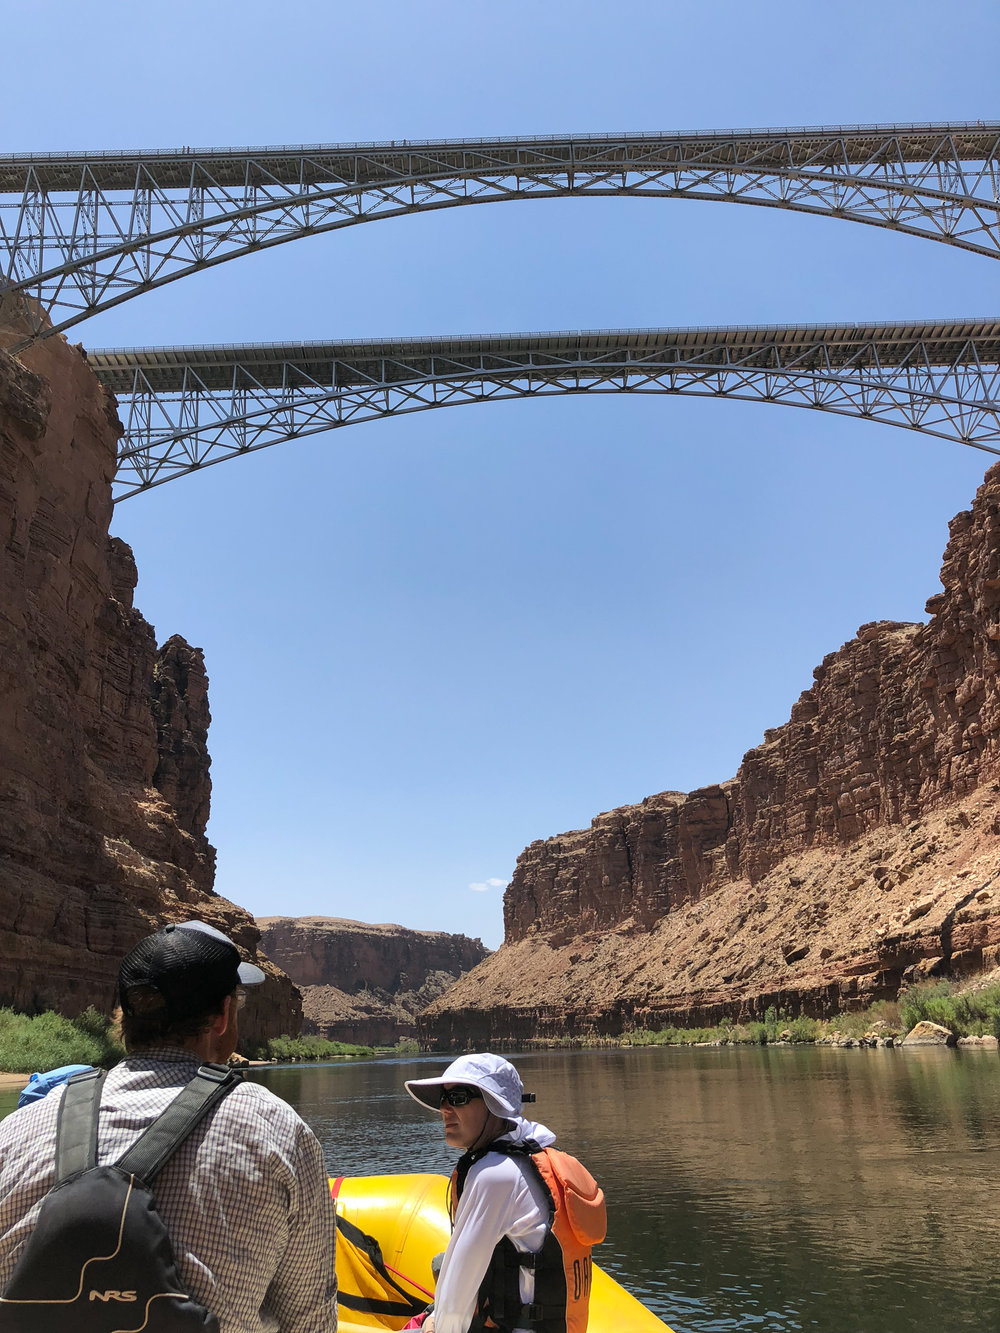 The Navajo bridge above is the last of civilization for many days